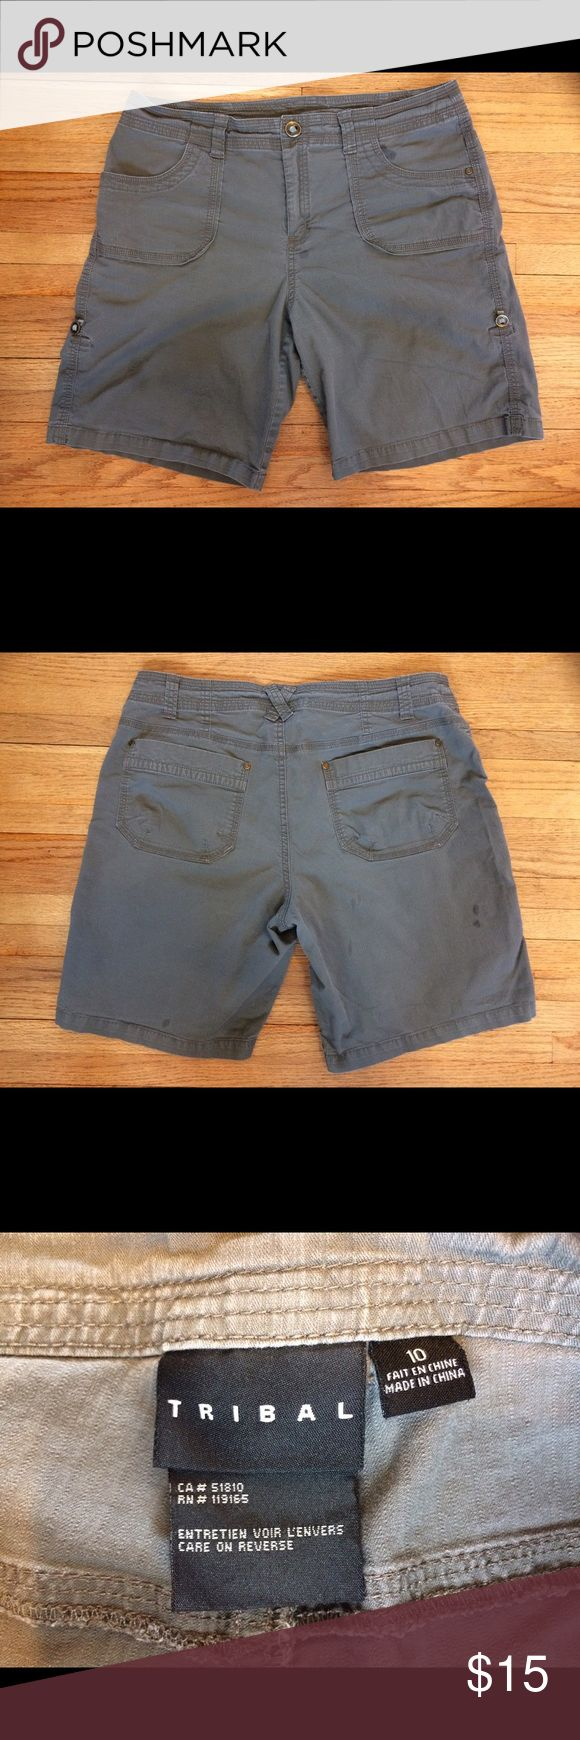 Tribal brand size 10 olive green shorts Olive green size 10 Tribal shorts. Excellent used condition. Smoke free home, reasonable offers considered. Tribal Shorts